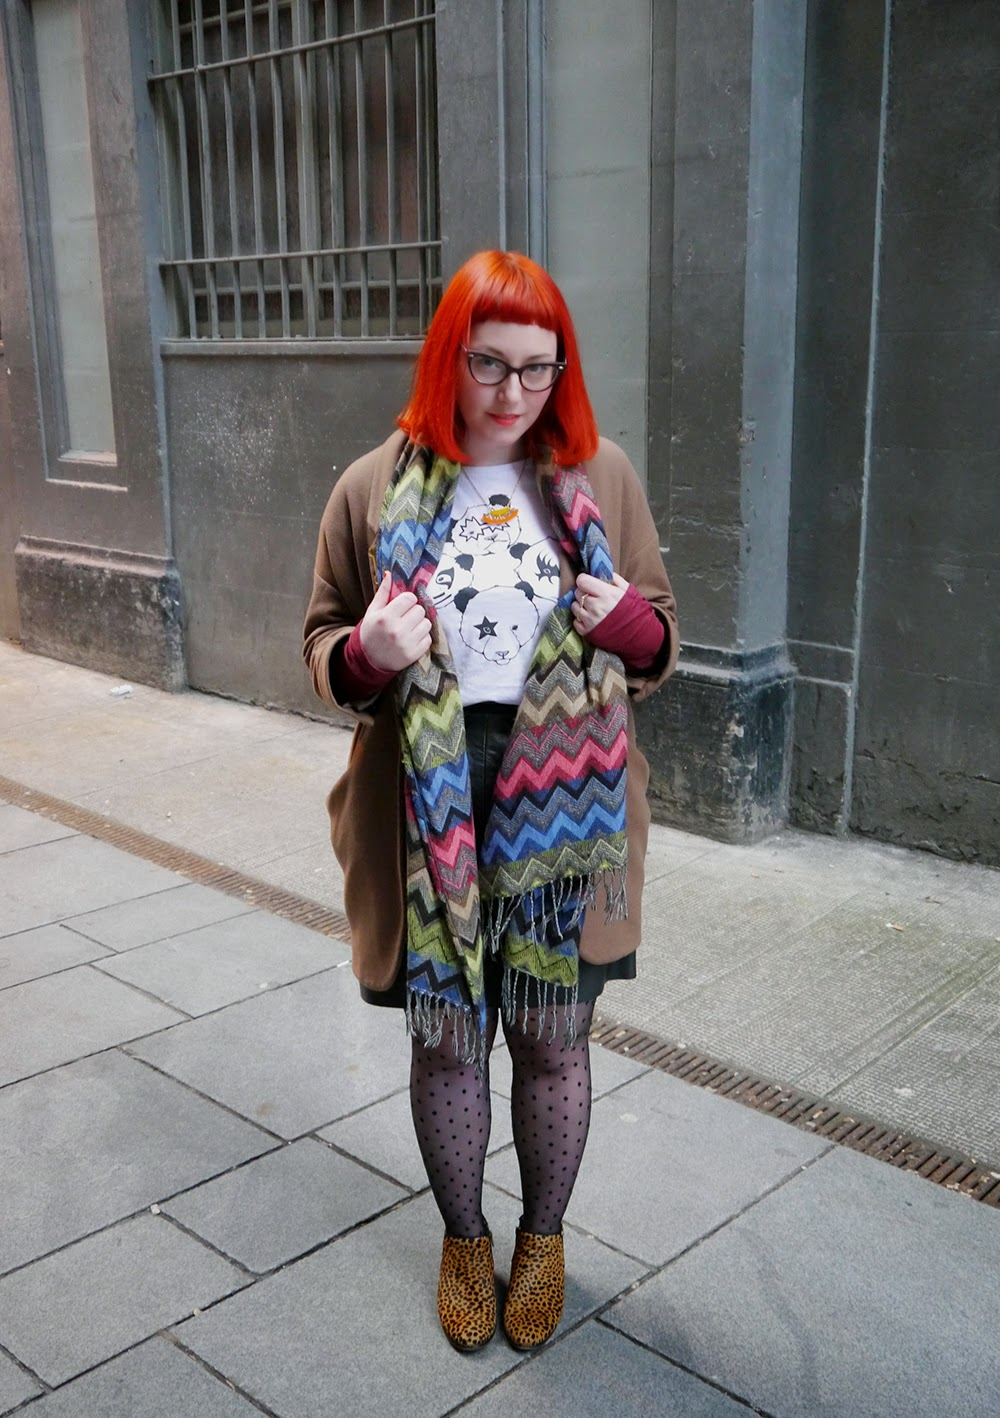 Scot Street Style, Glasgow street style, Scottish Blogger, Edinburgh Blogger, red head style, Brat and Suzie Panda Tshirt, Vintage leather skirt, Duo leopard boots, Sugar and Vice necklace, Glasgow